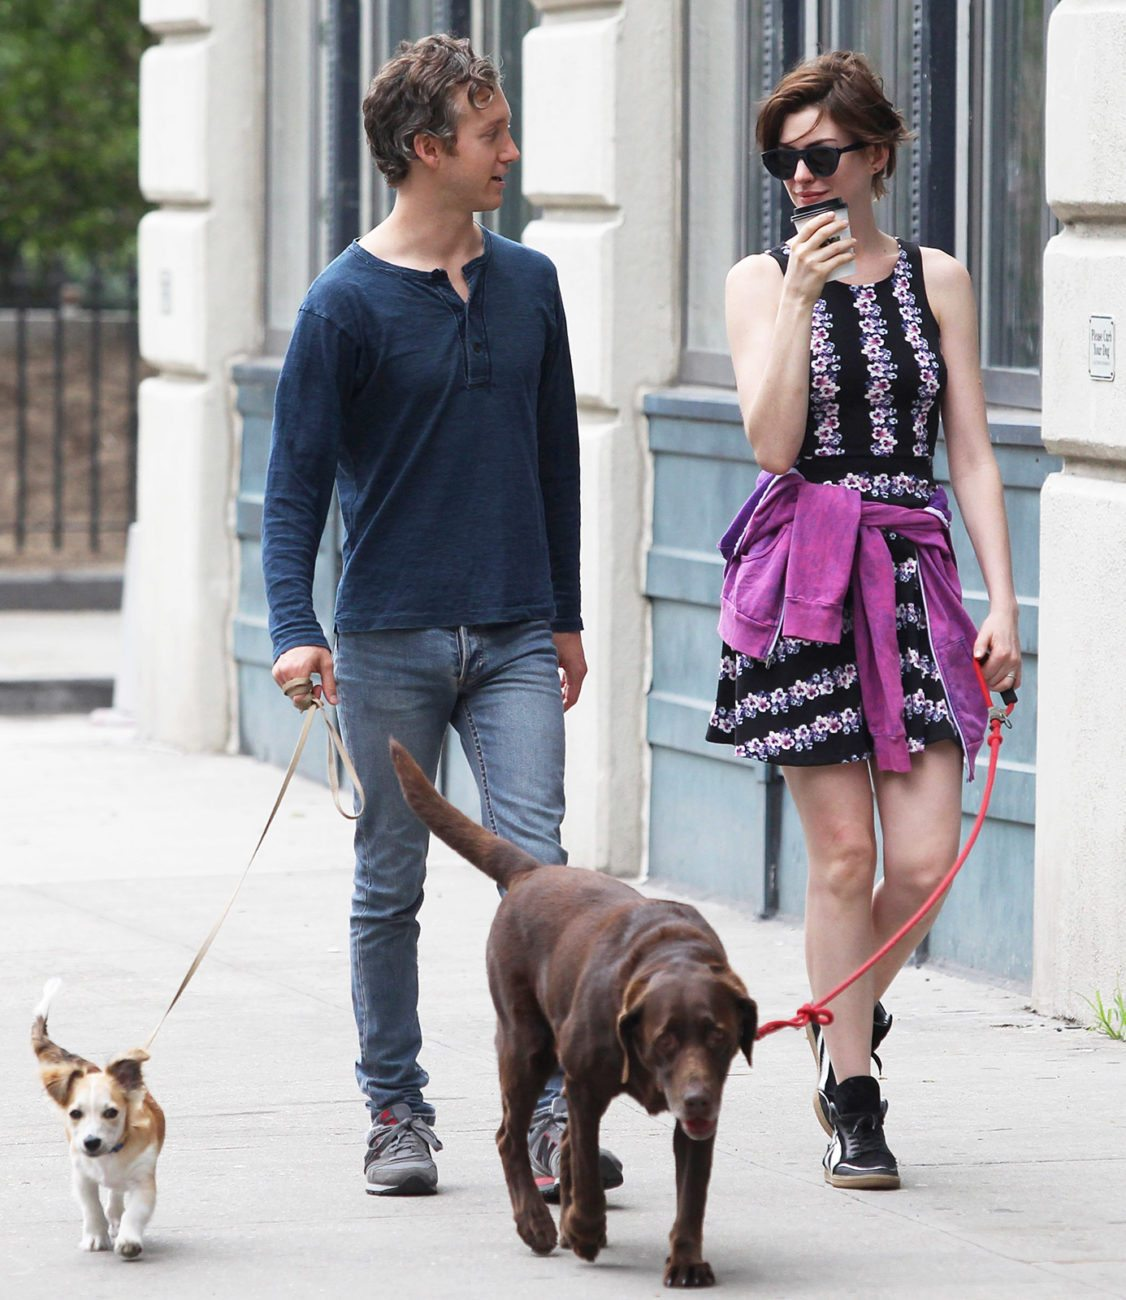 anne-hathaway-dogs Famosos que han adoptado animales Famosos que han adoptado animales anne hathaway dogs